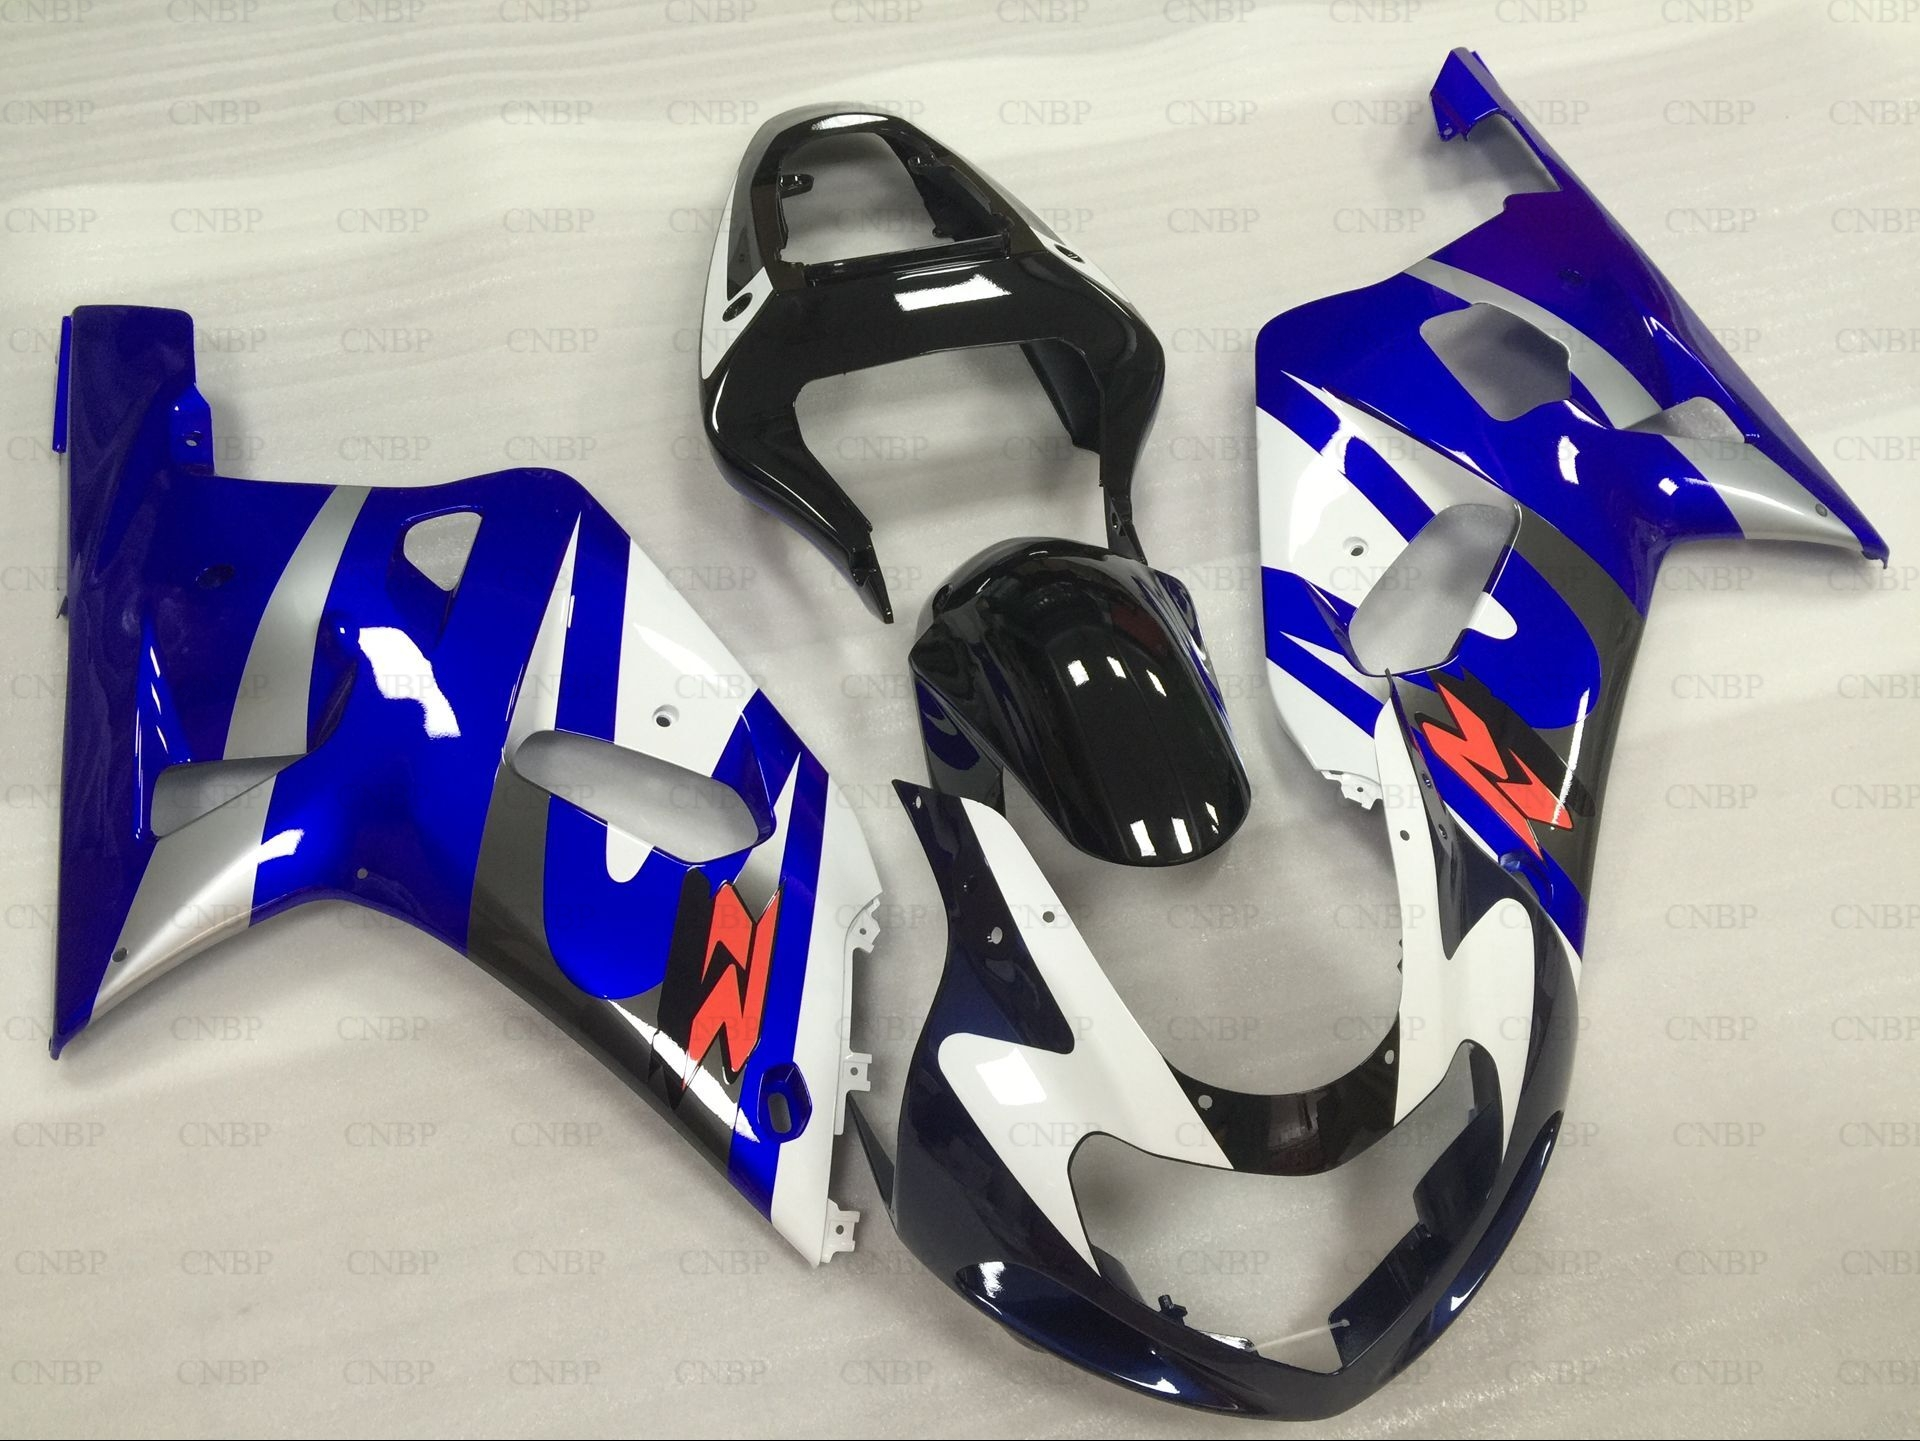 Body Kits GSXR 600 750 1000 2002 Body Kits GSX-R 1000 2001 2000 - 2003 K1 K2 Blue White Black Full Body Kits GSXR600 2000 пиджак boss orange boss orange bo456emjto53 page 3